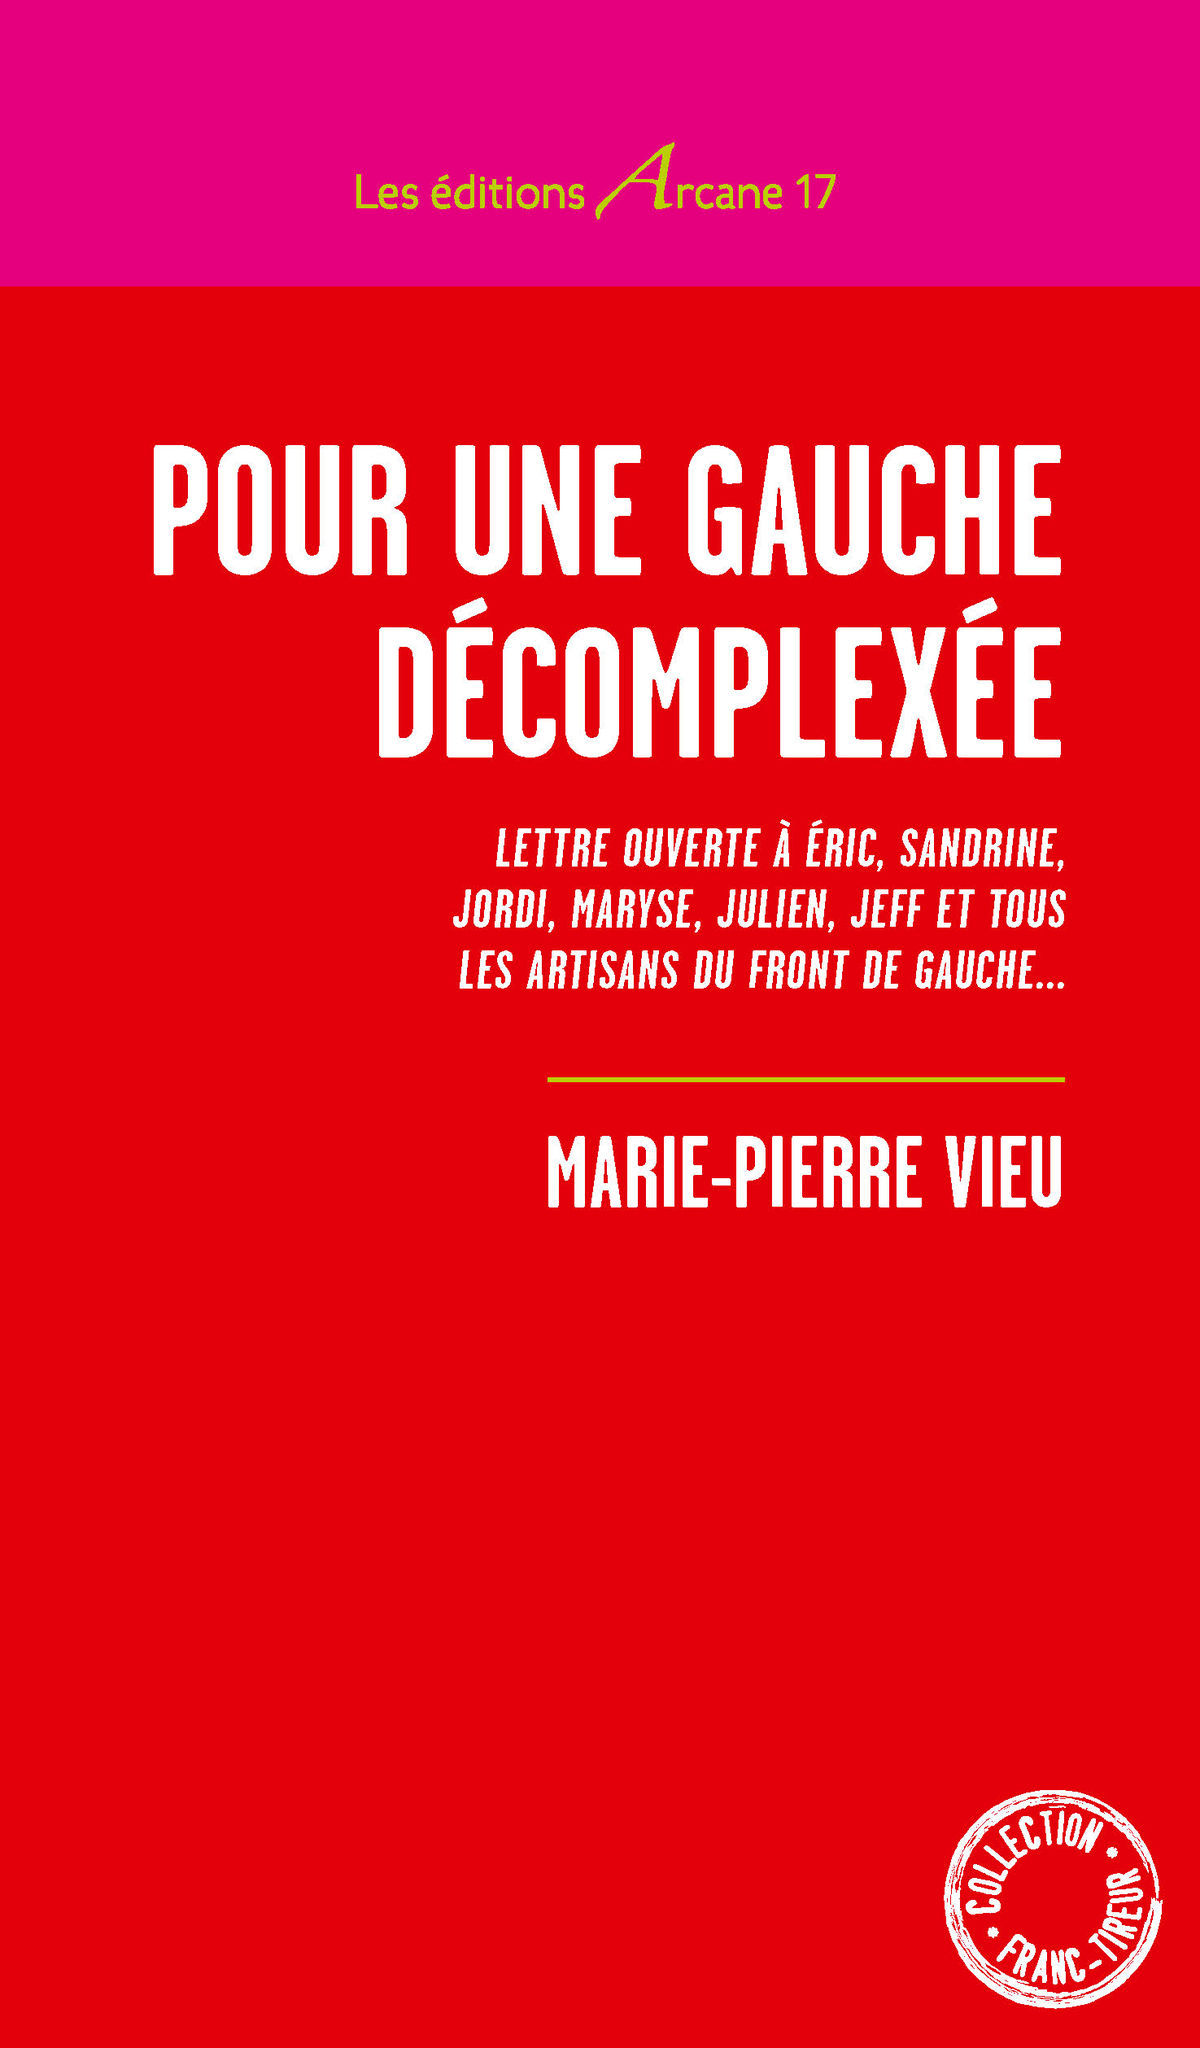 couv_ft_gauche_decomplexee_web-1